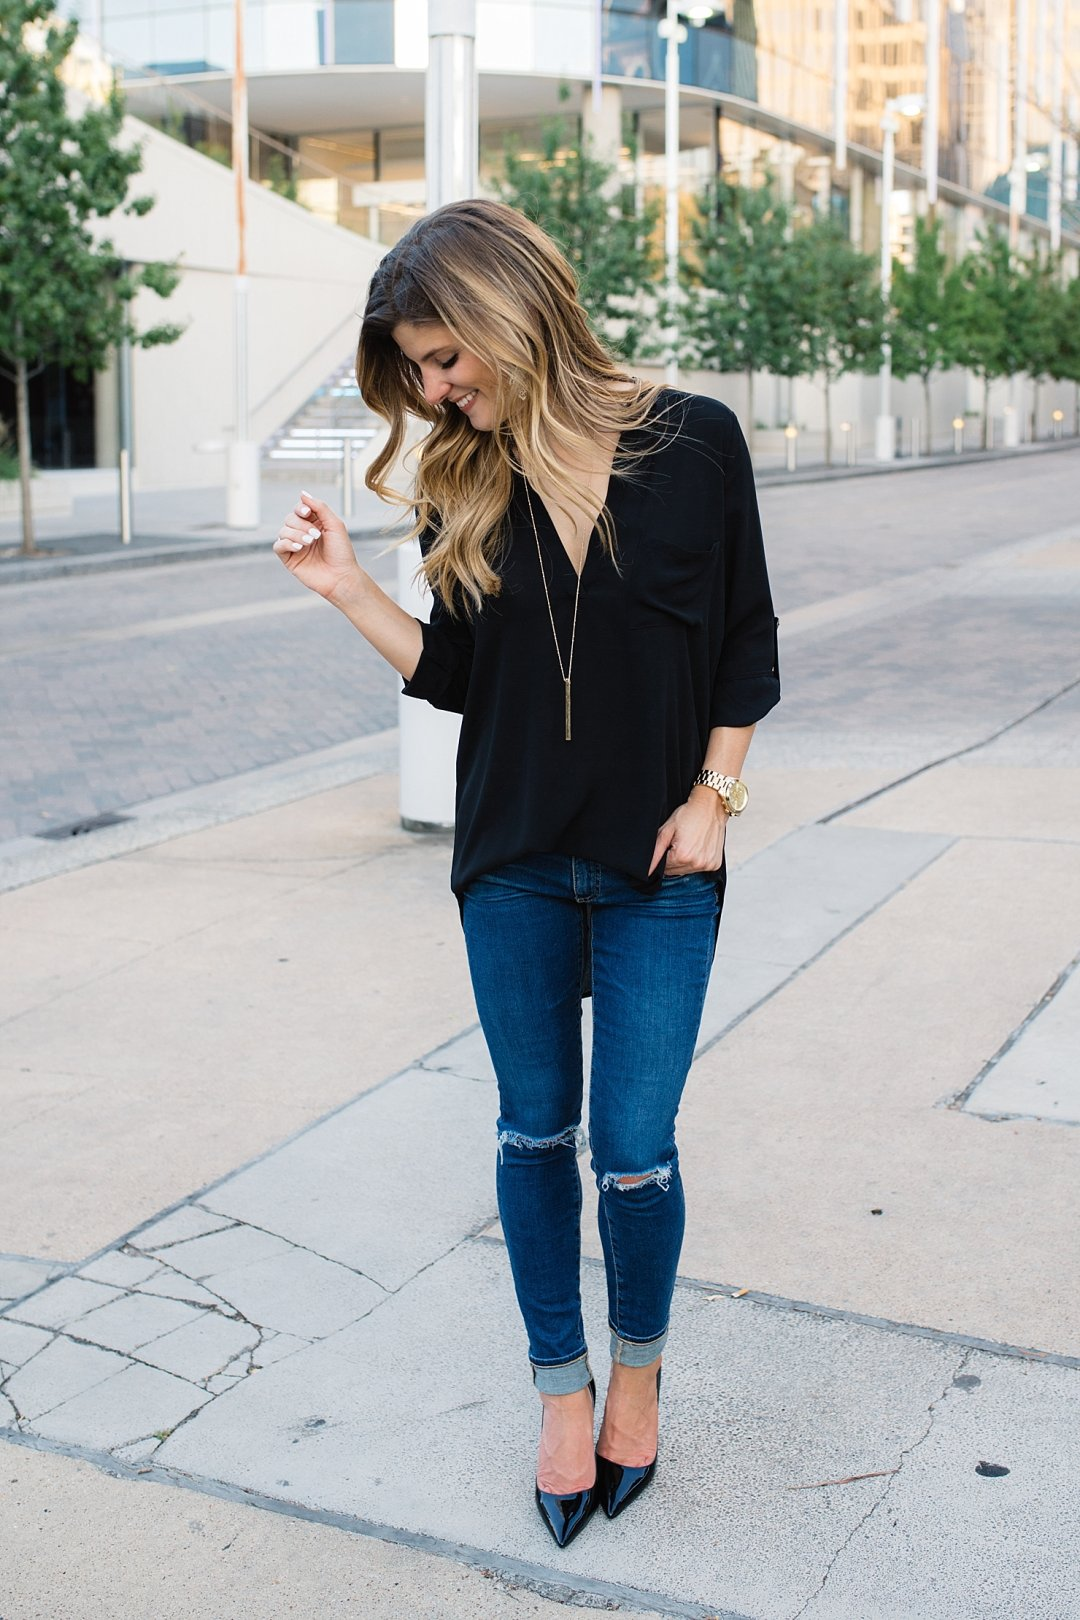 distressed denim + black top + gold necklace + pointy toe black pumps